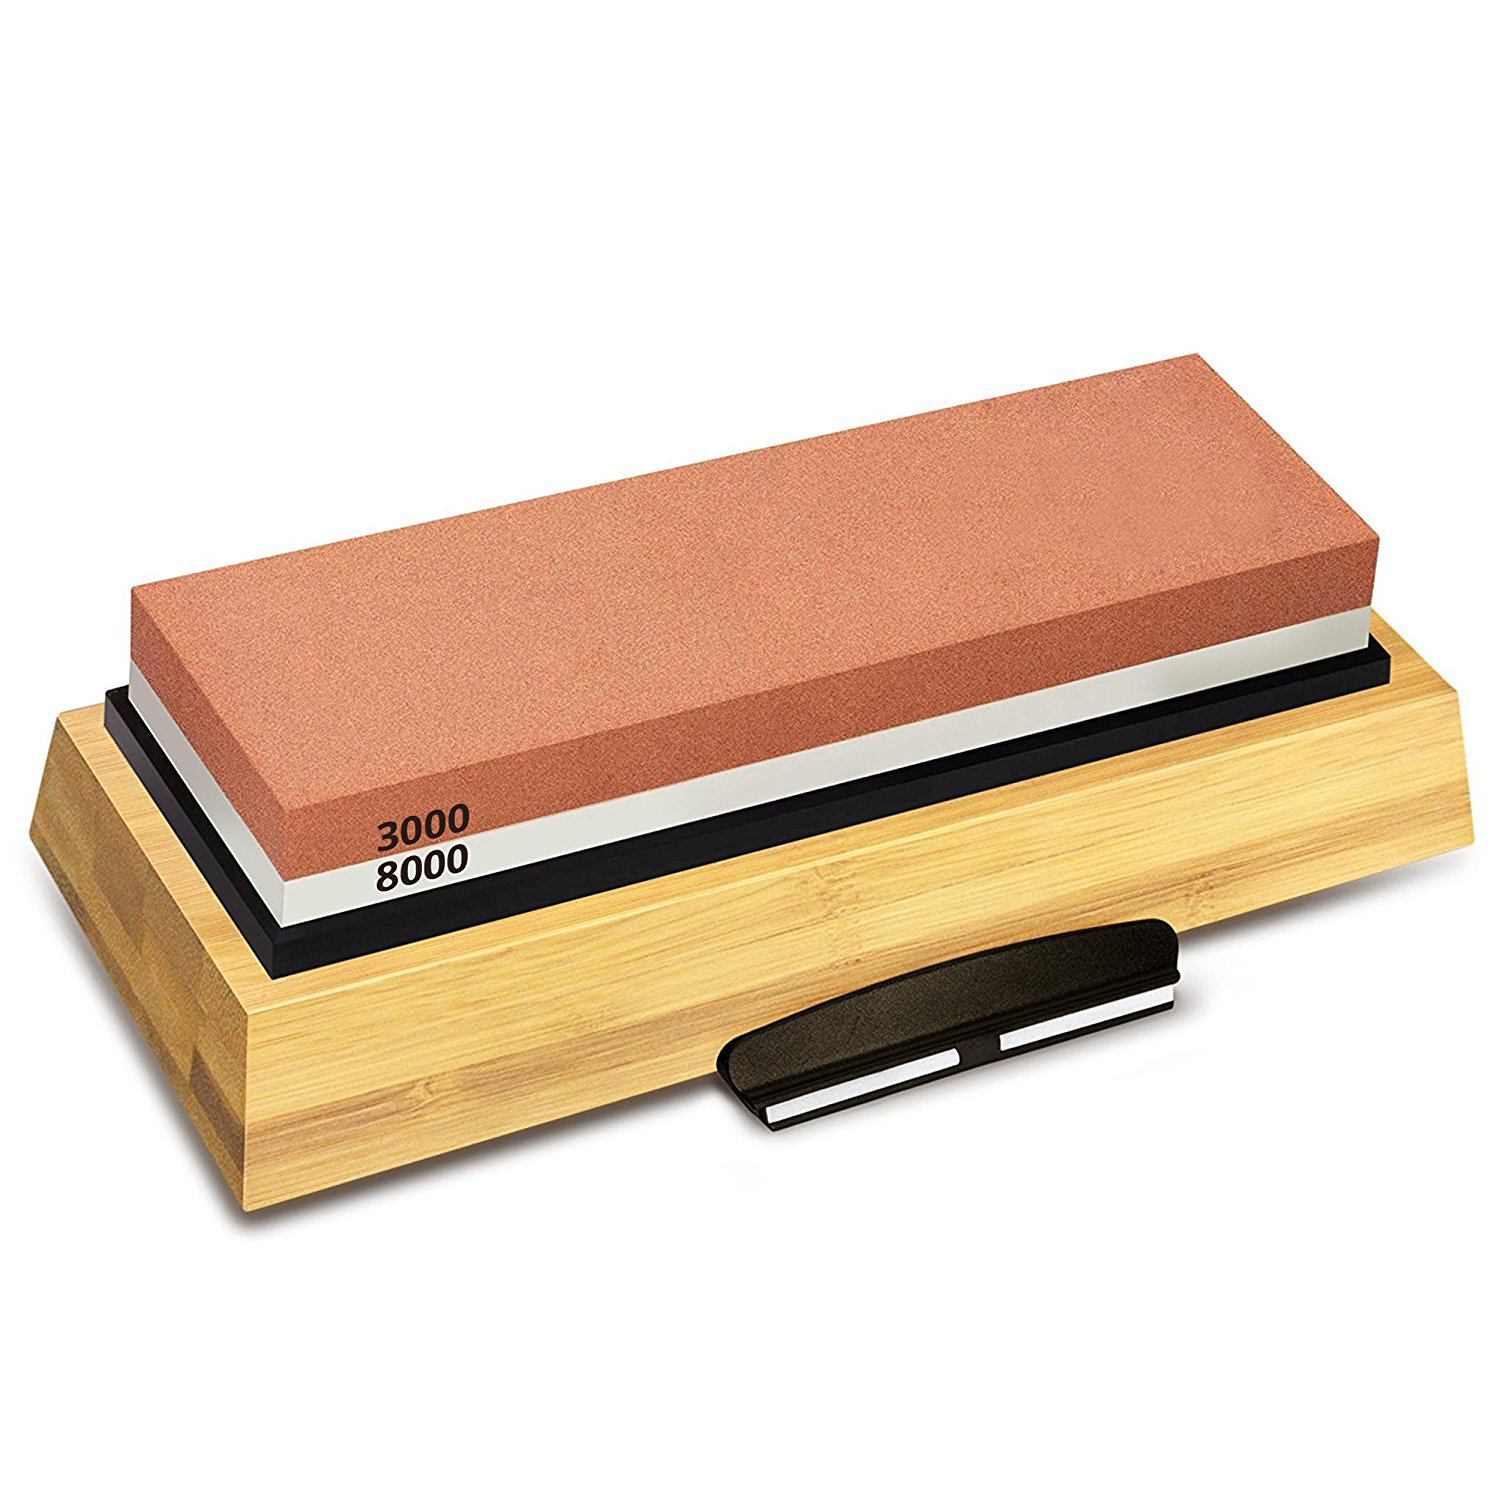 Hot sale Sharpening Stone 3000 & 8000 Grit - Double Sided Whetstone Set For Knives With Non-Slip Bamboo Base and Free Angle Gu